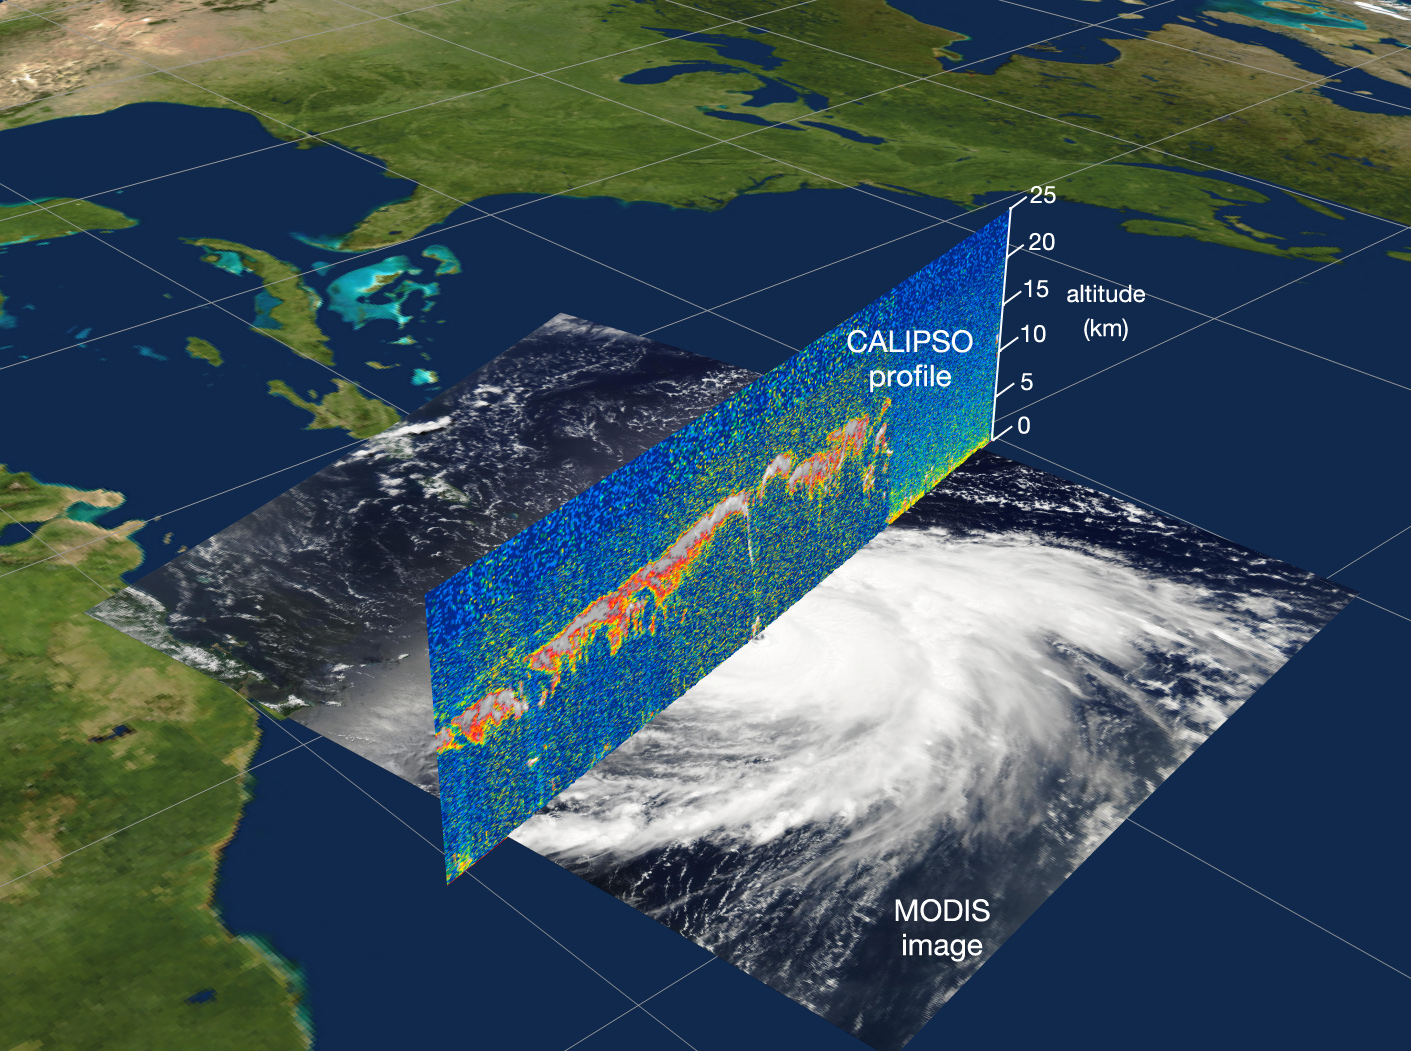 nasa weather imagery - photo #13